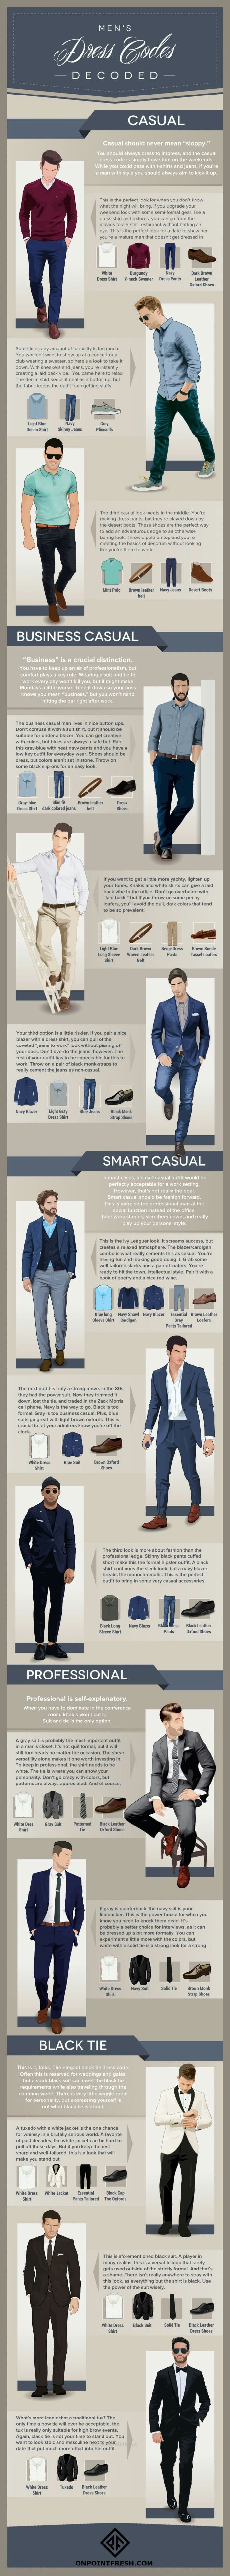 597 best style images on pinterest clothing cool cars and dress mens dress codes decoded infographic tap the link to shop on our official online store you can also join our affiliate andor rewards programs for malvernweather Gallery